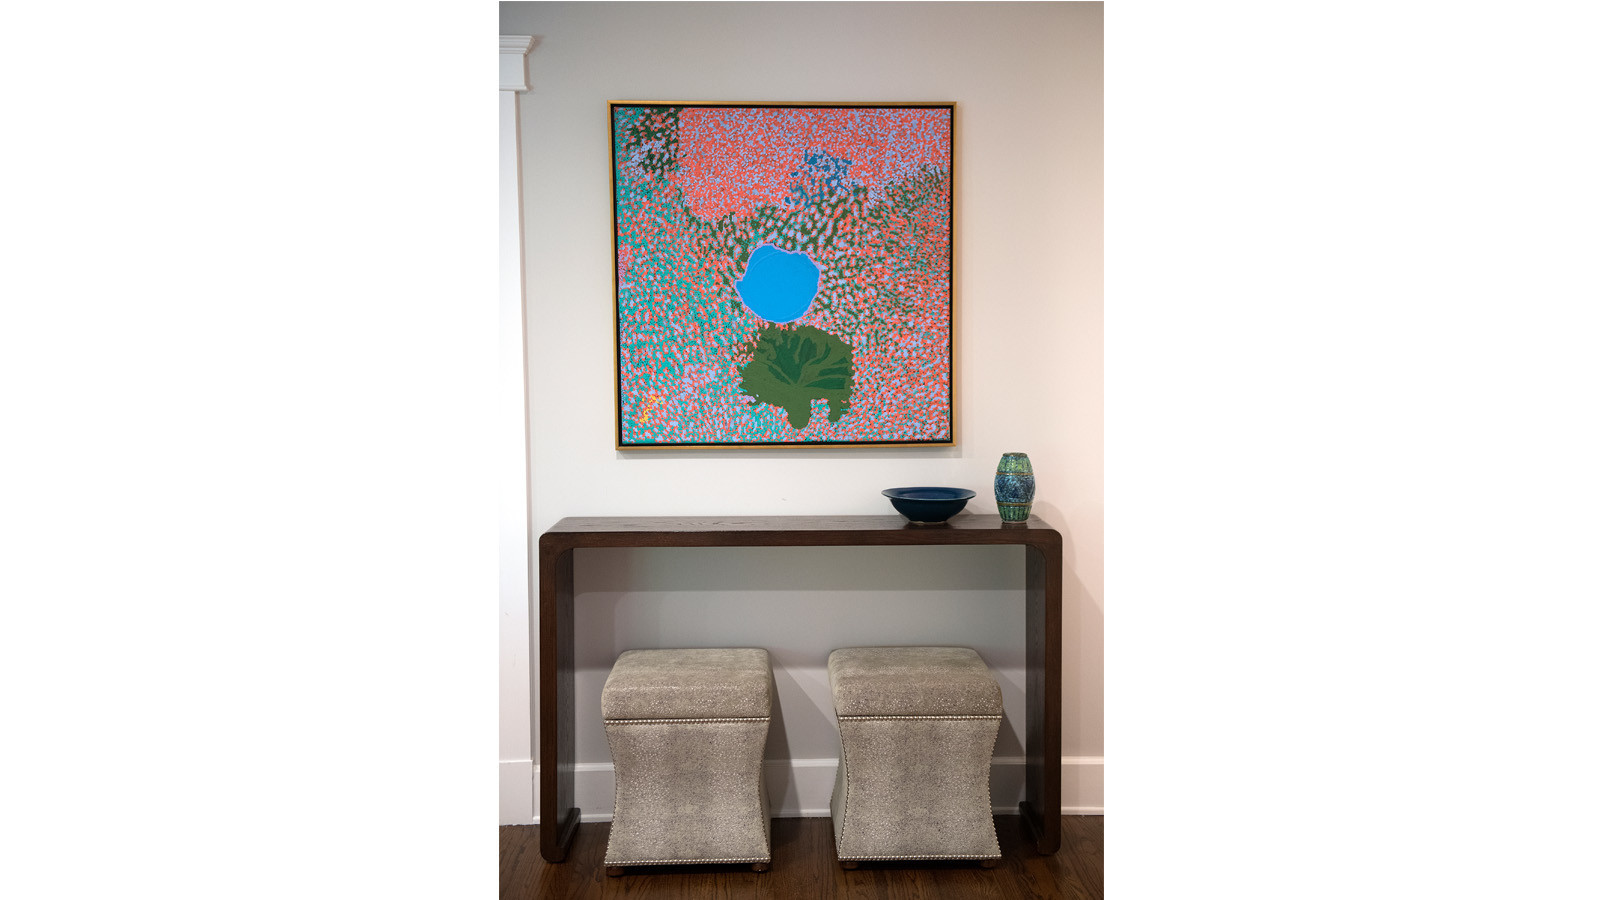 A colorful Aboriginal painting hangs in the living room.